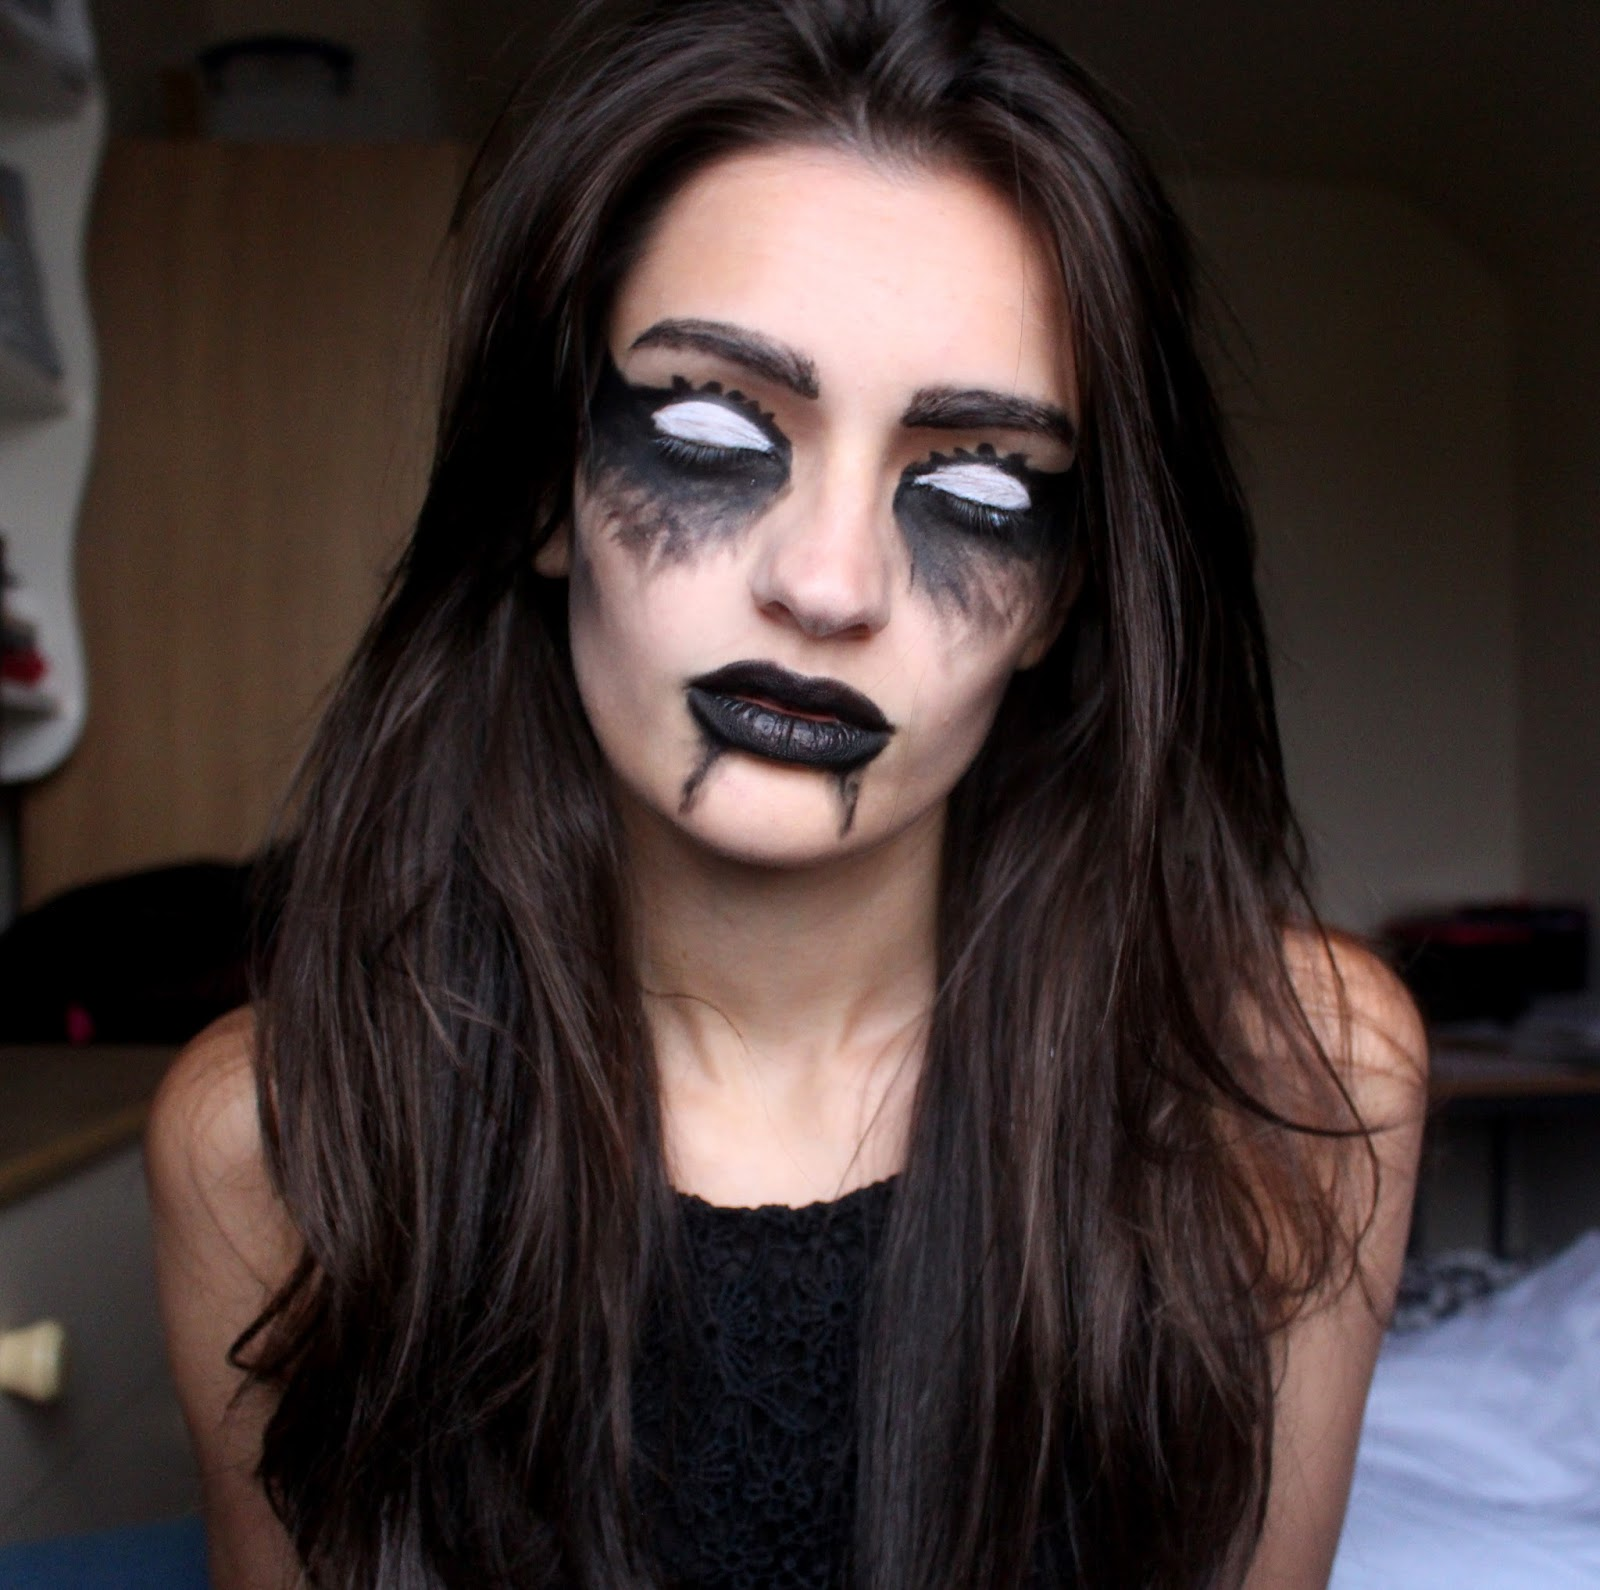 Halloween Ideas: Ghostly Makeup